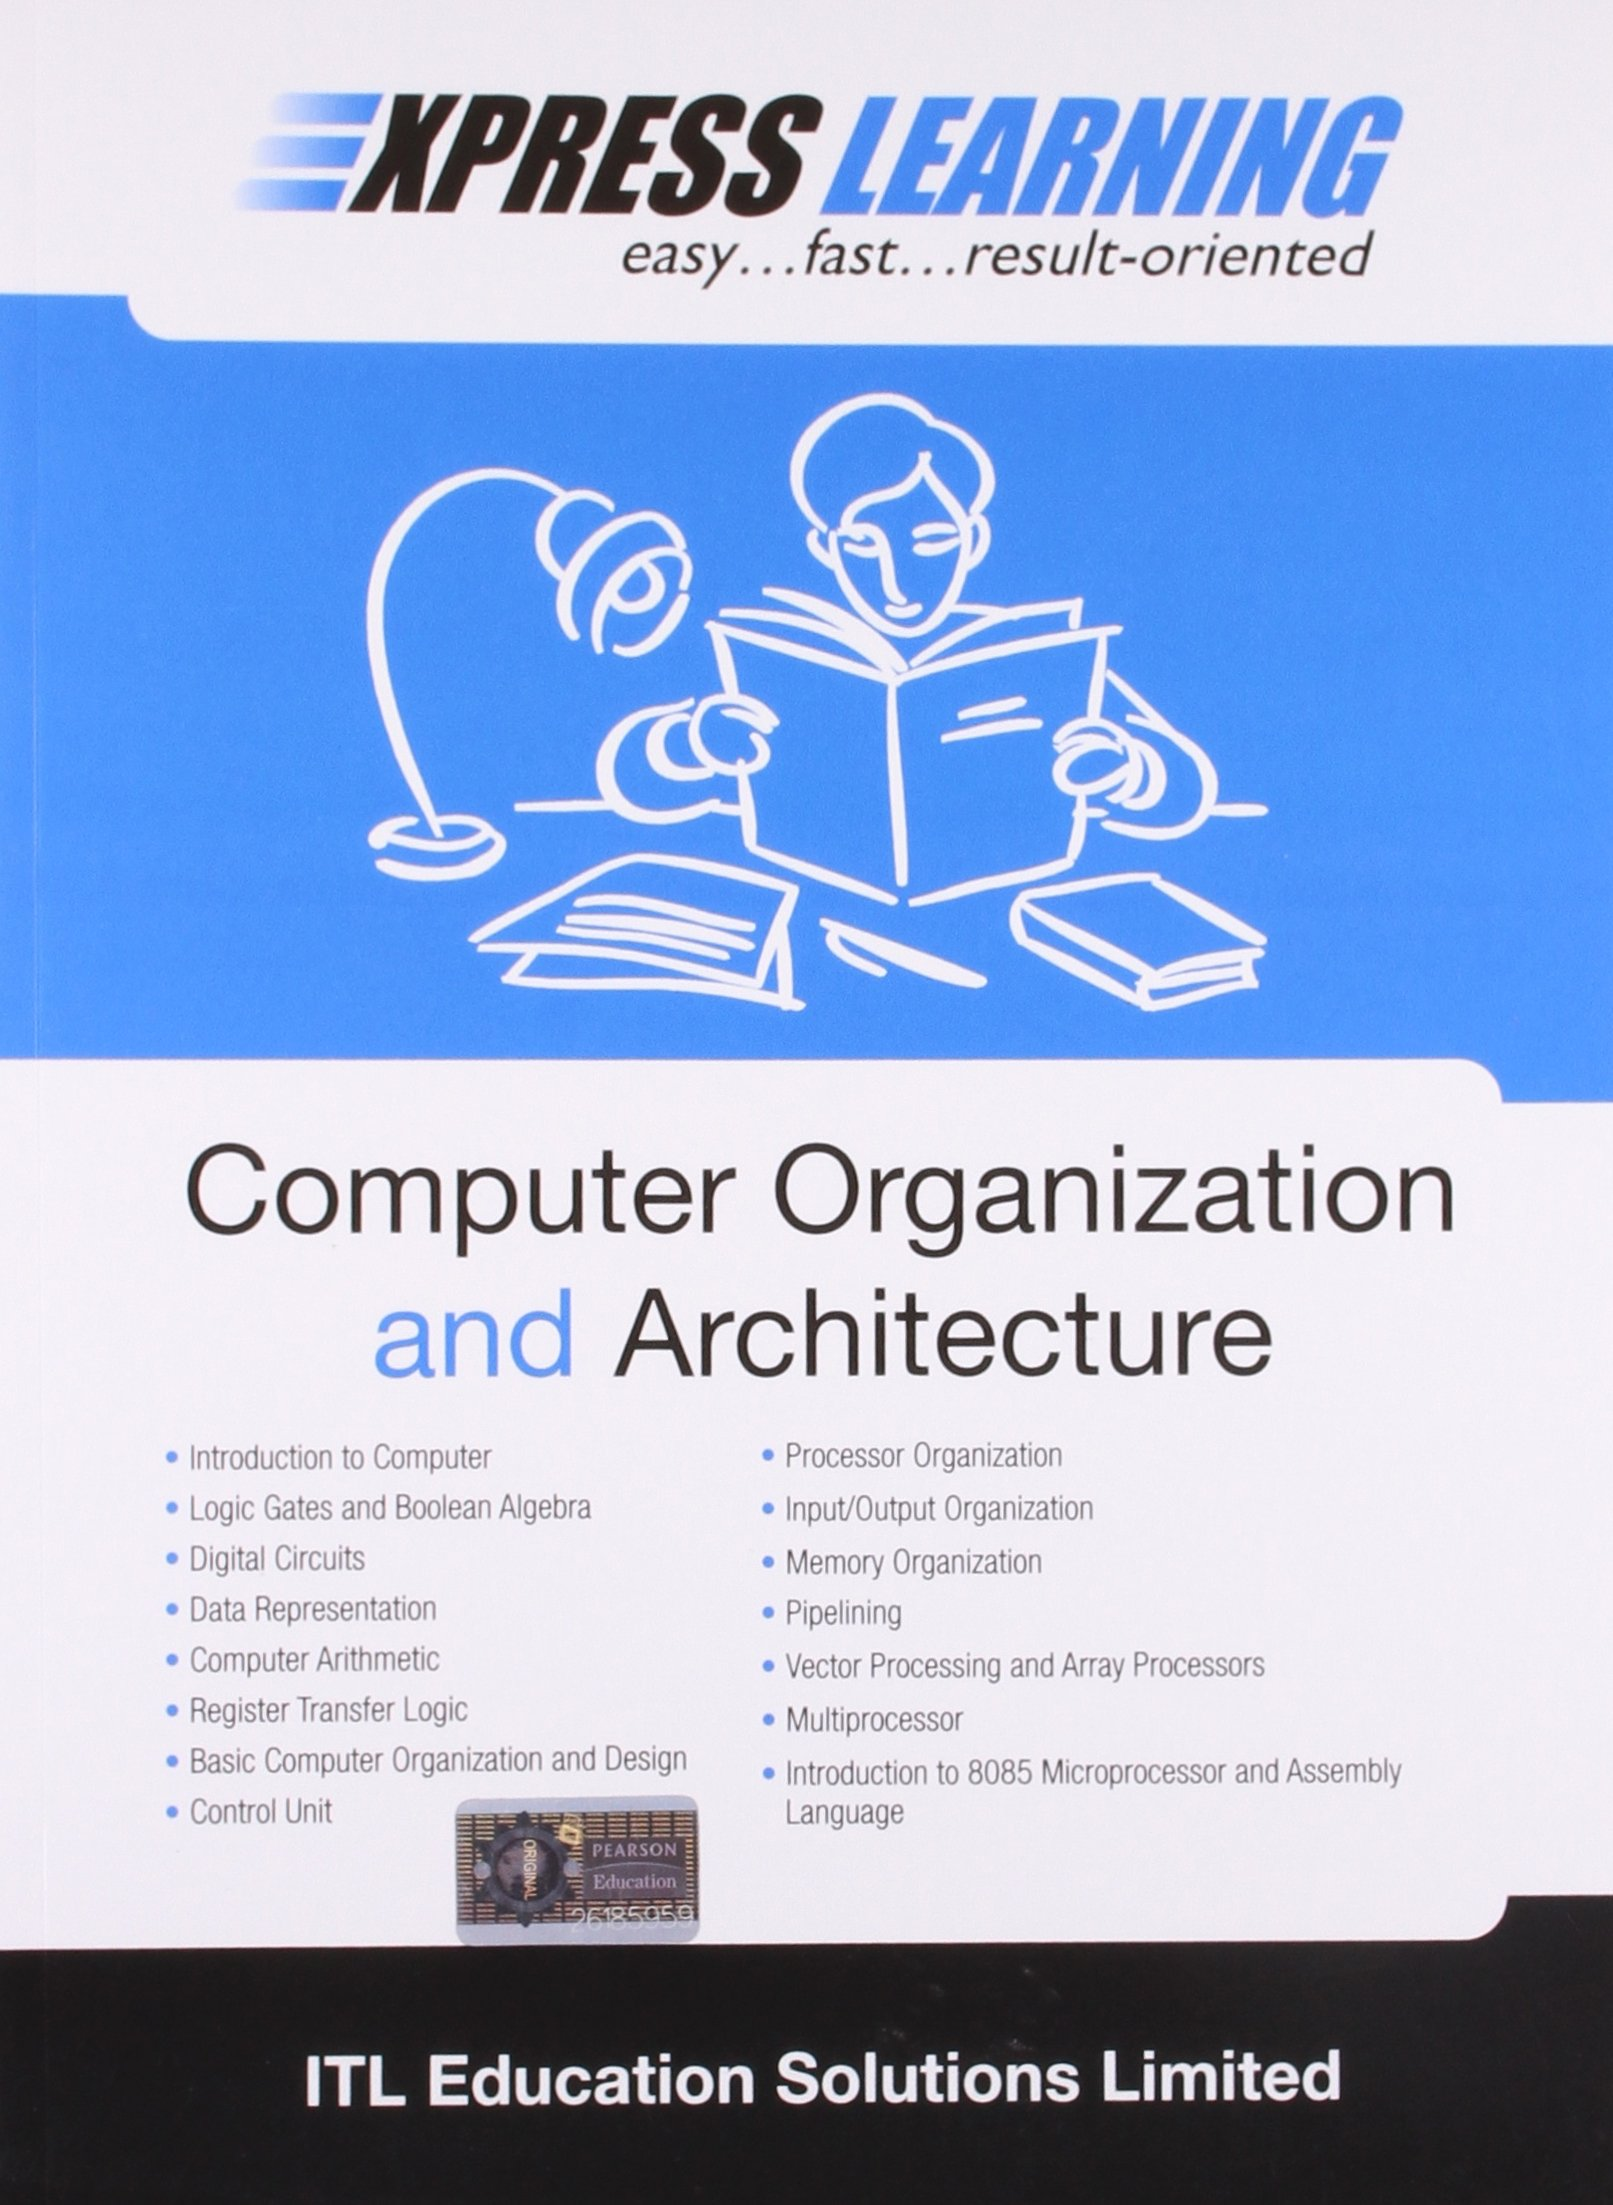 Buy Express Learning Computer Organization And Architecture 1e Electric Circuits Crossword 1 Science Teacher Resources By Book Online At Low Prices In India